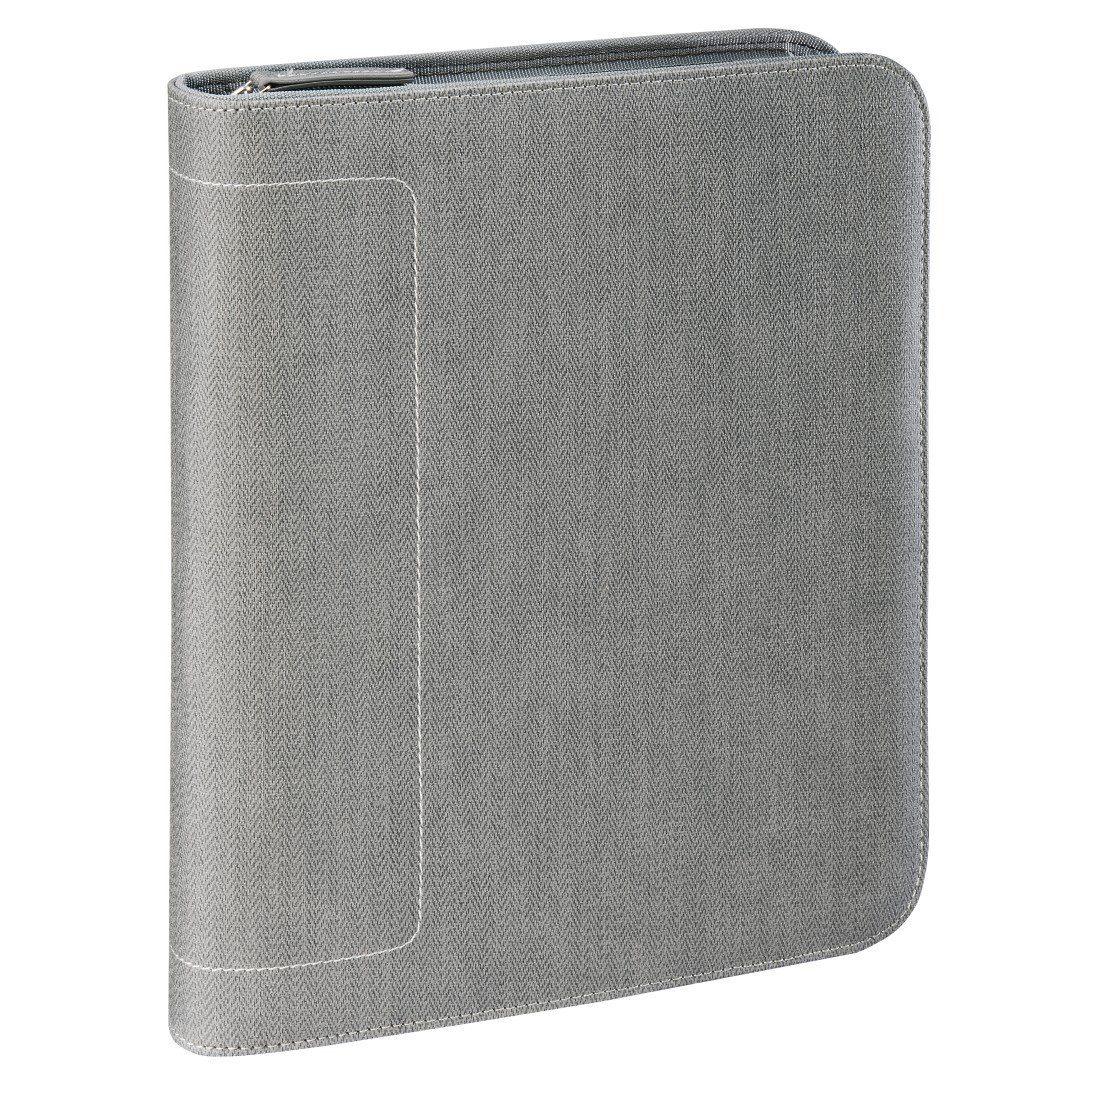 Hama est. 1923 Tablet-Organizer A5 Hannover, Light Grey